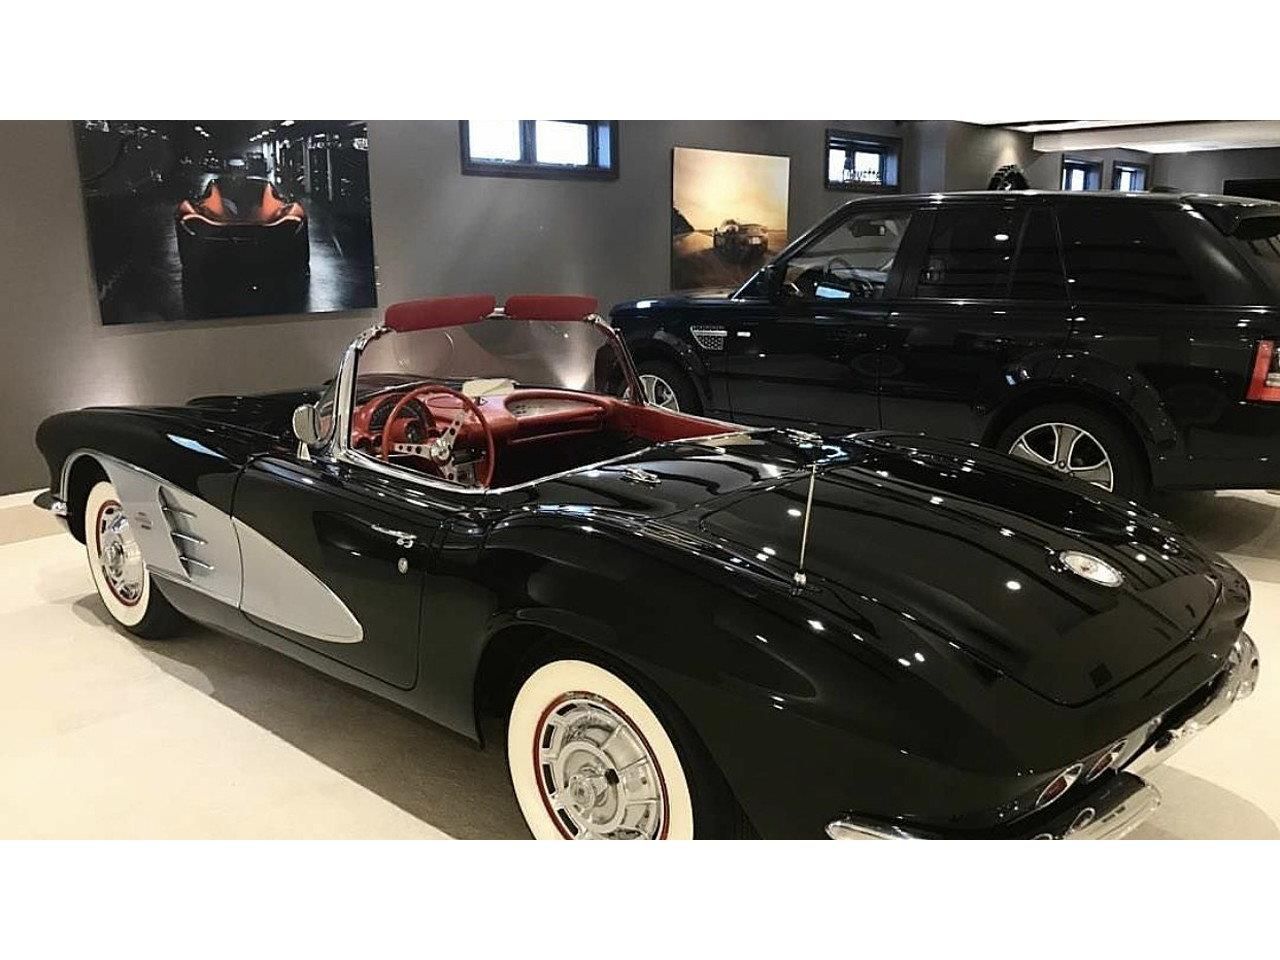 Large Picture of 1961 Chevrolet Corvette located in Florida Offered by a Private Seller - M7OZ